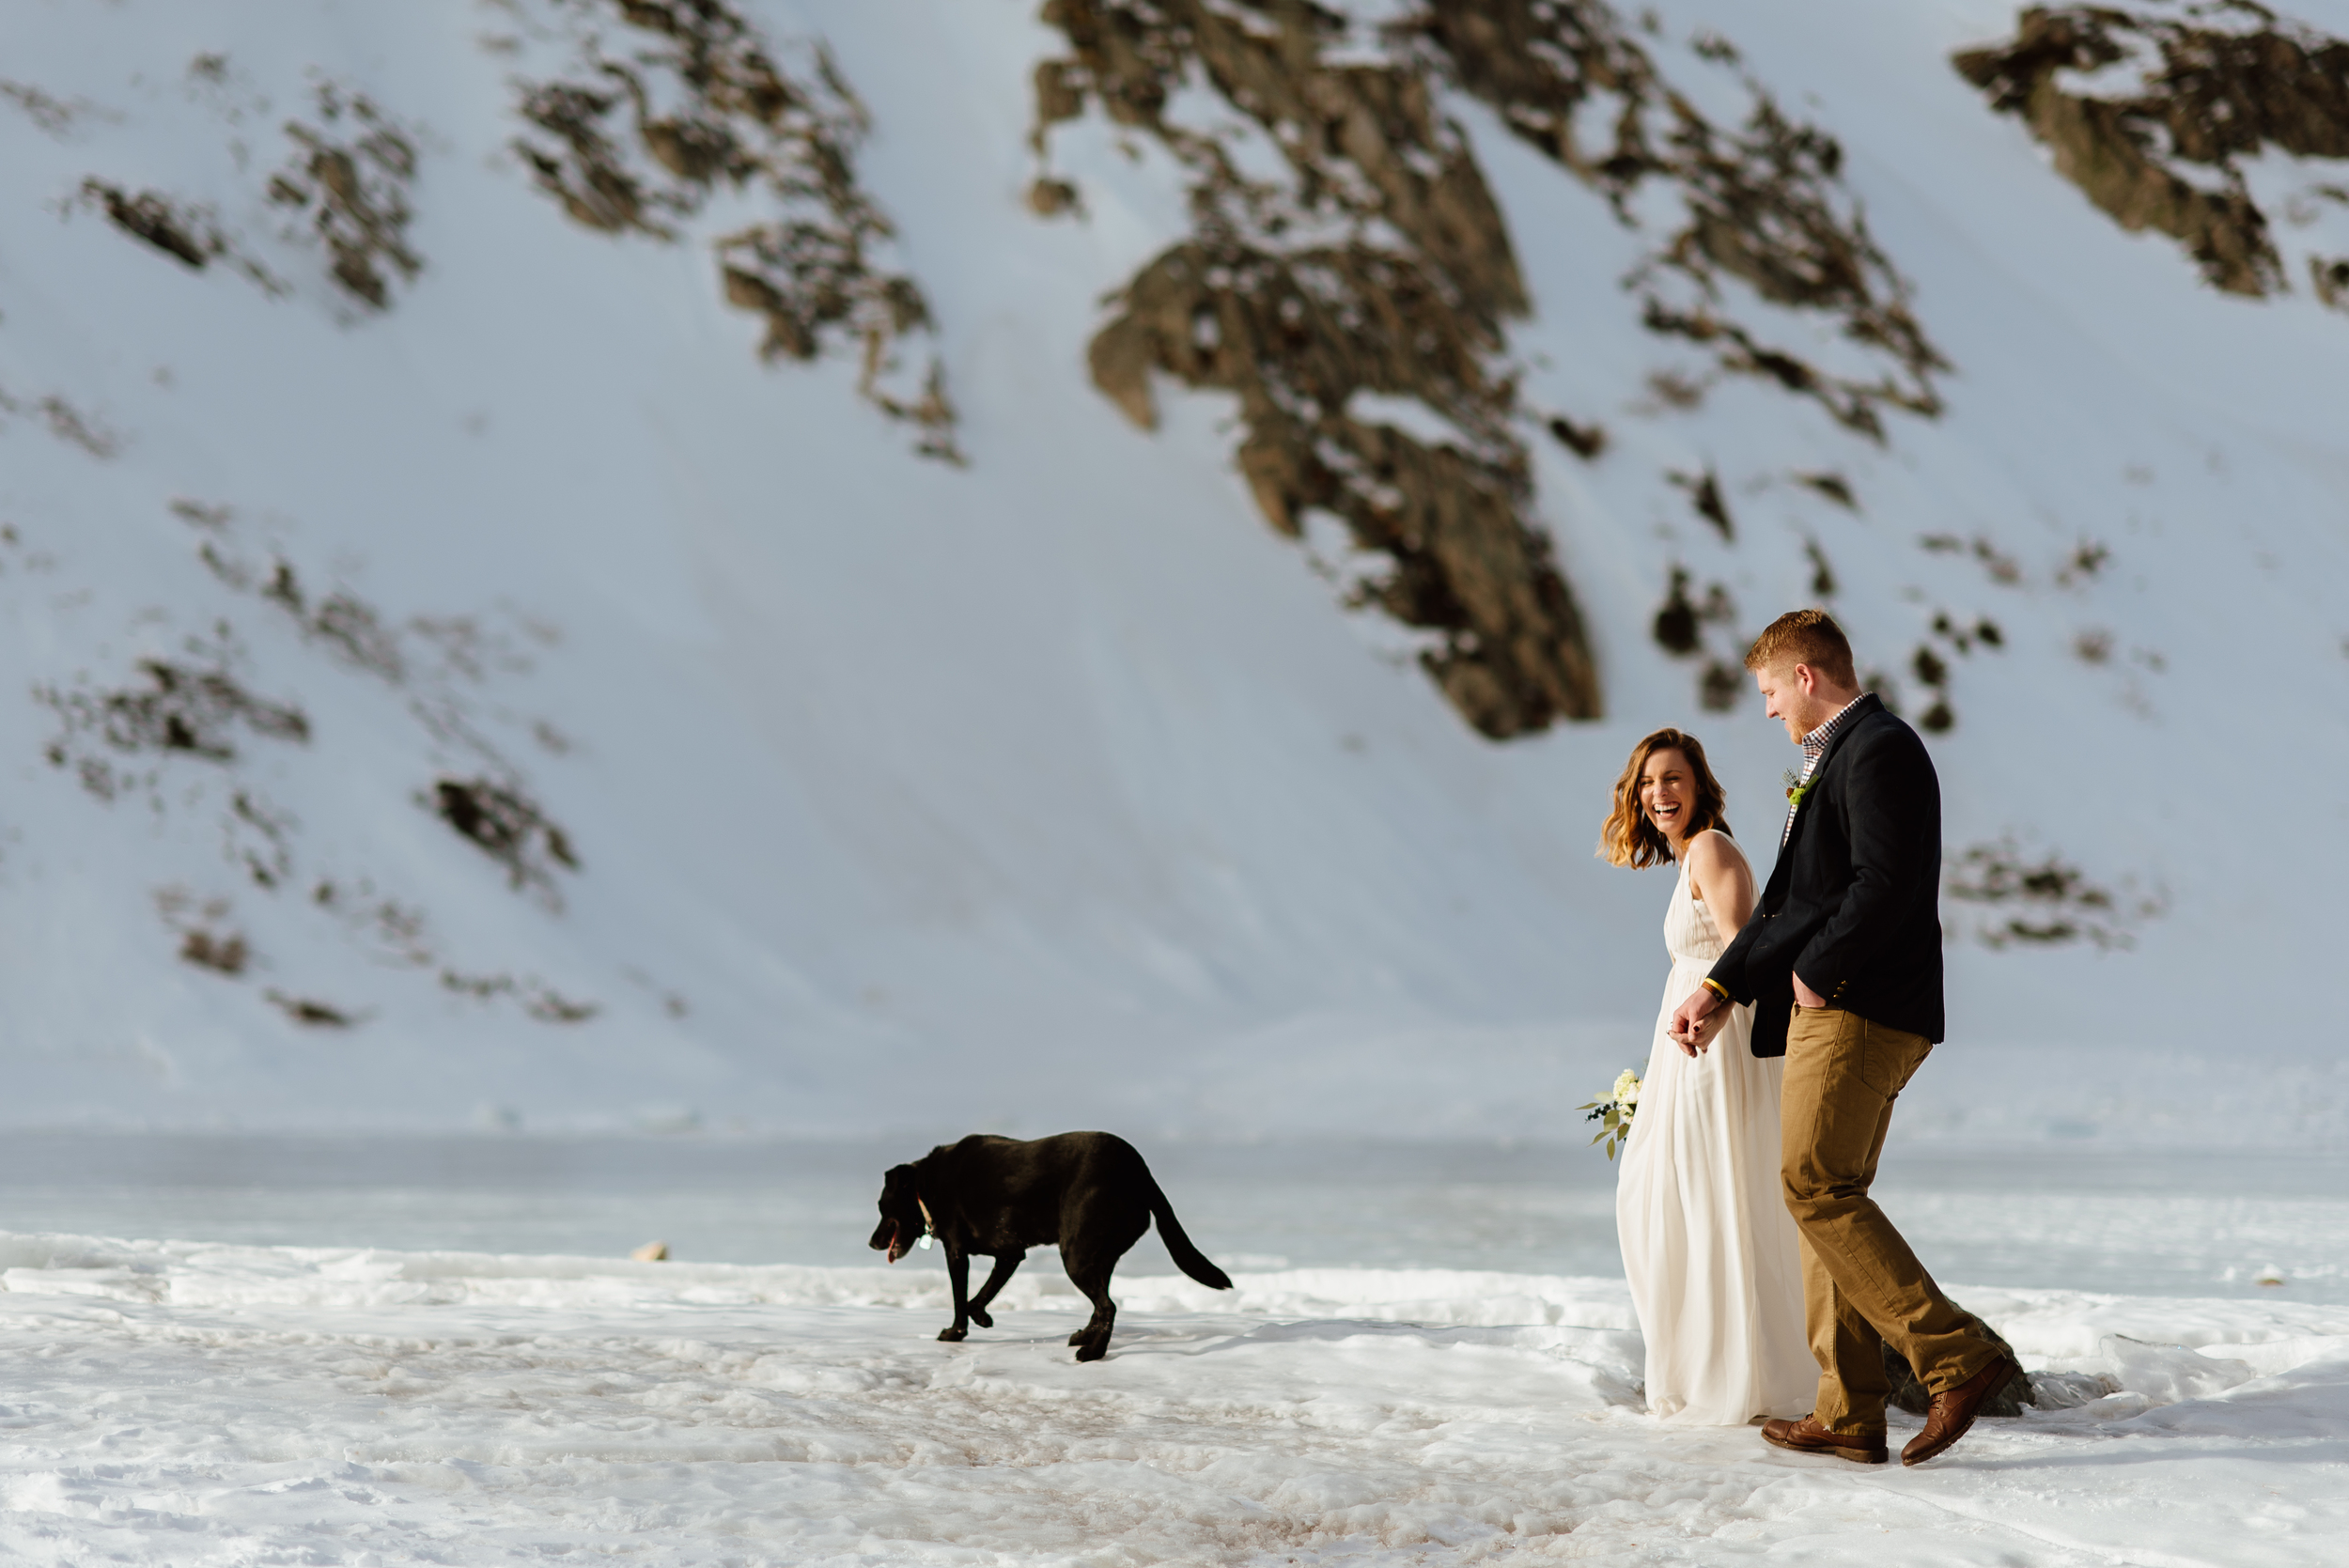 What an adorable wedding photo of the bride and groom frolicking in the snow with their dog! I love the idea of an intimate,winter wedding in the Rocky Mountains!| Mountain wedding photos by intimate, elopement photographer, Maddie Mae.